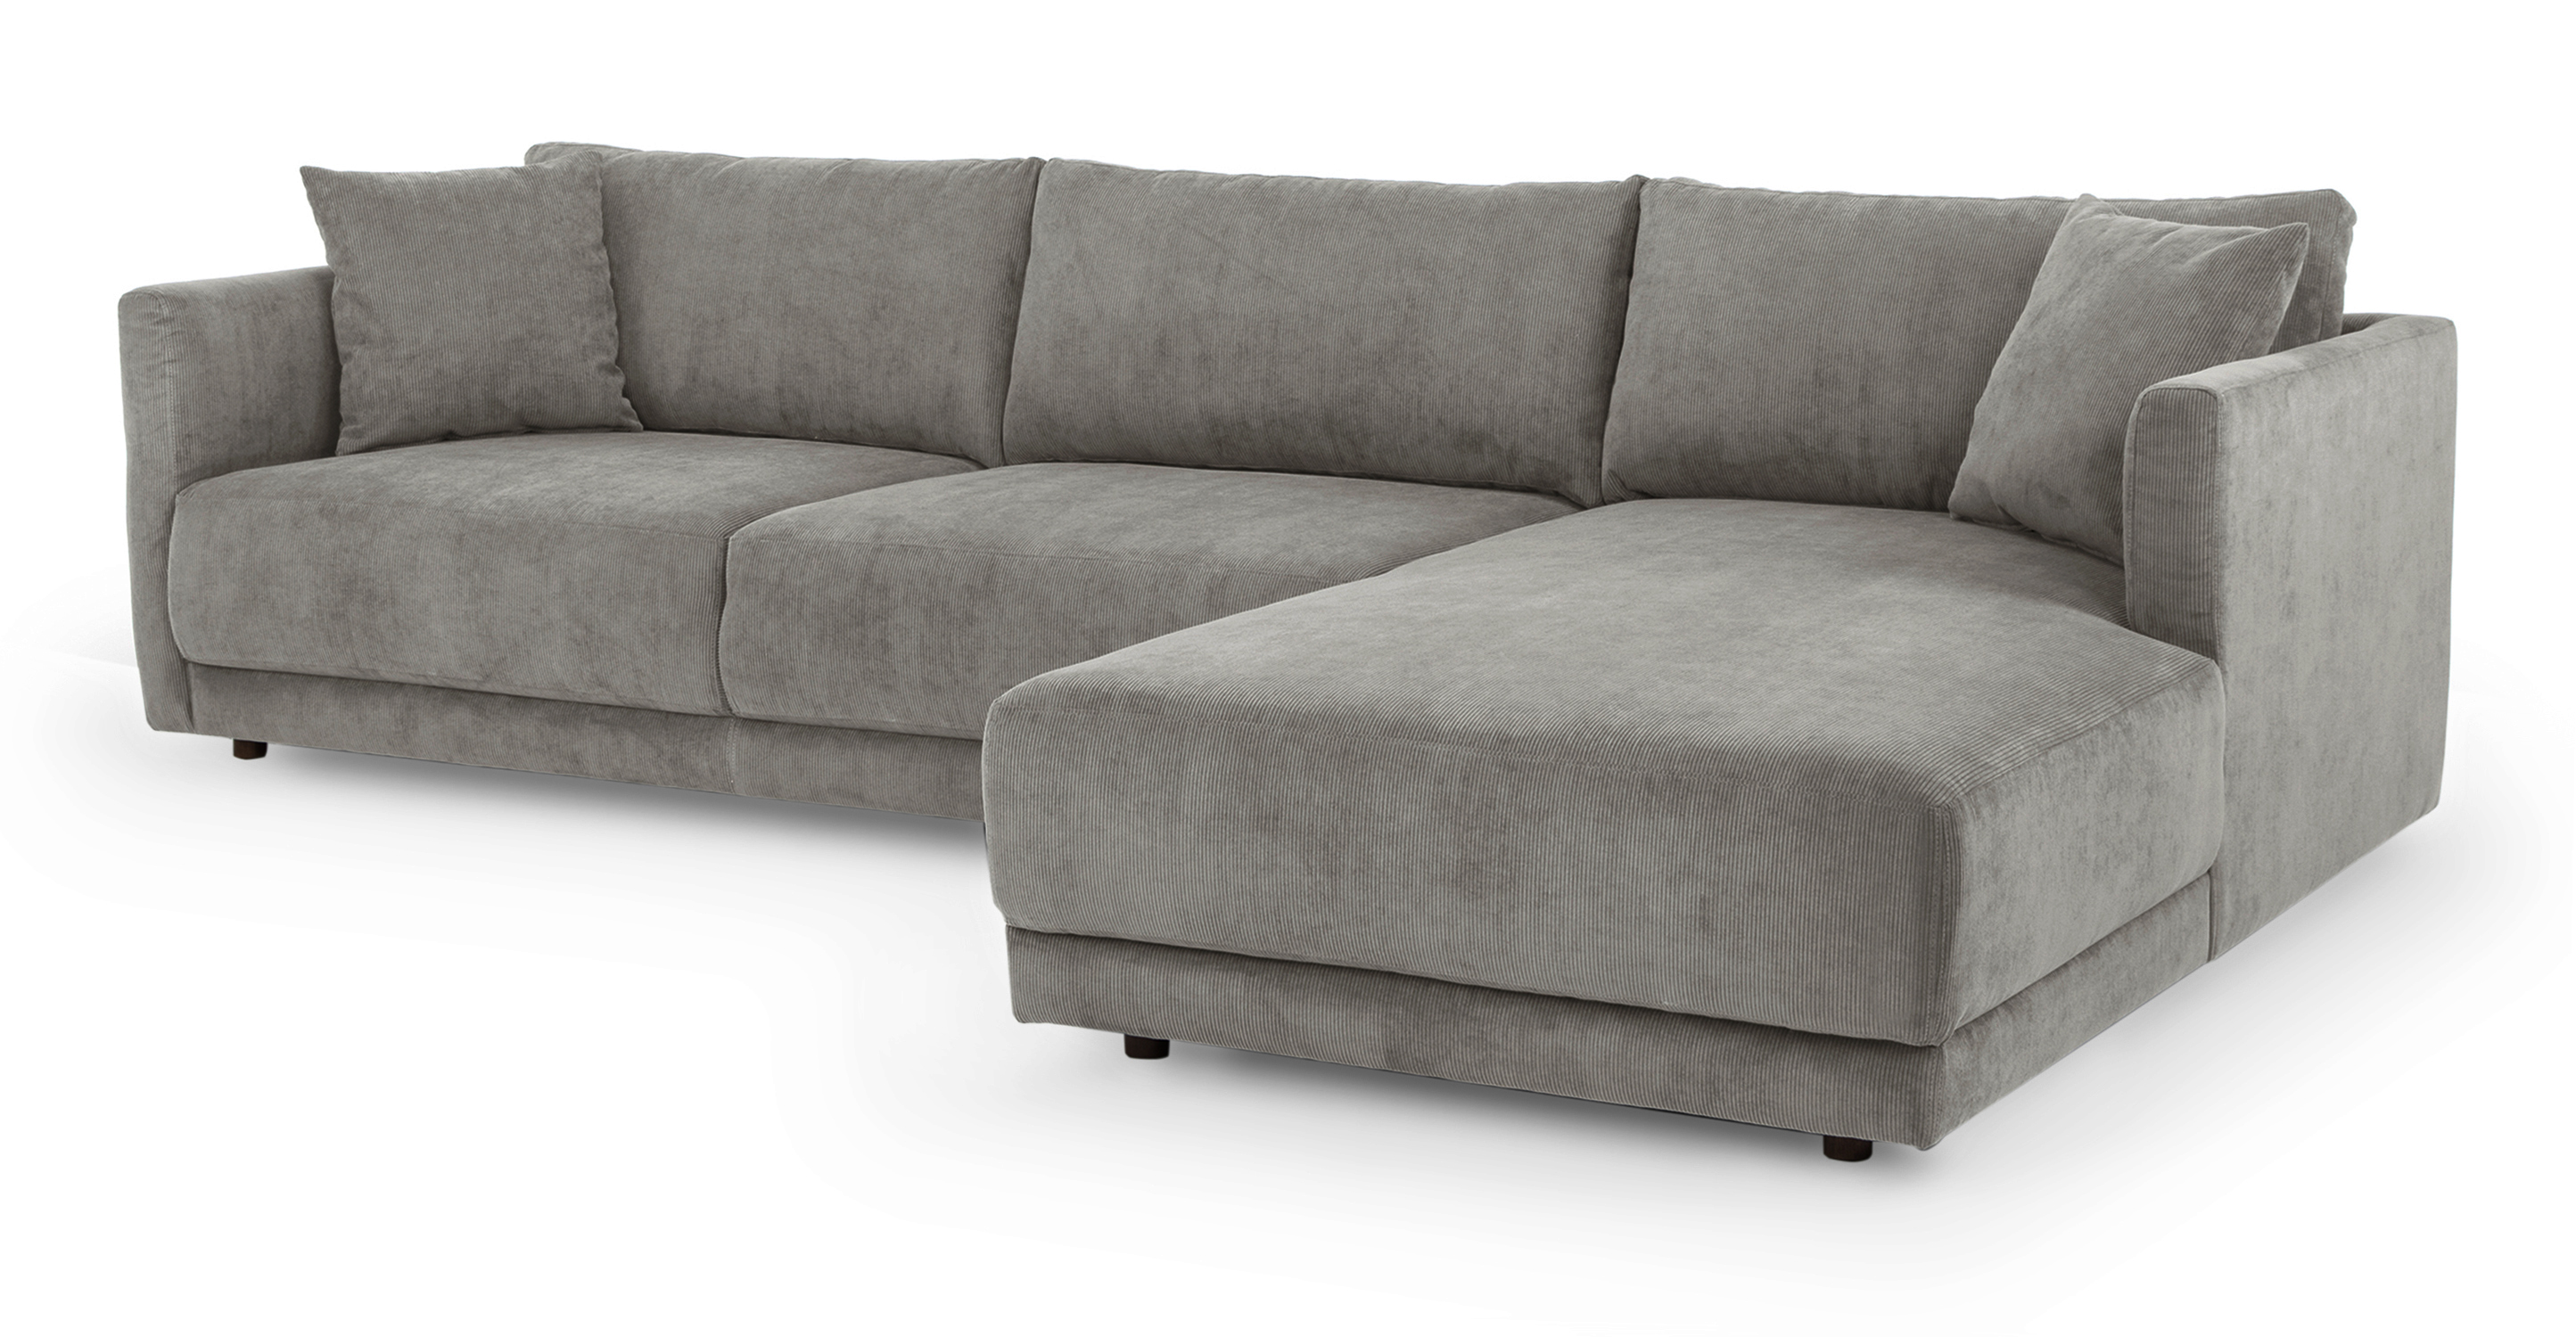 "Domus 115"" Sofa Sectional Right, Monorail Cord"